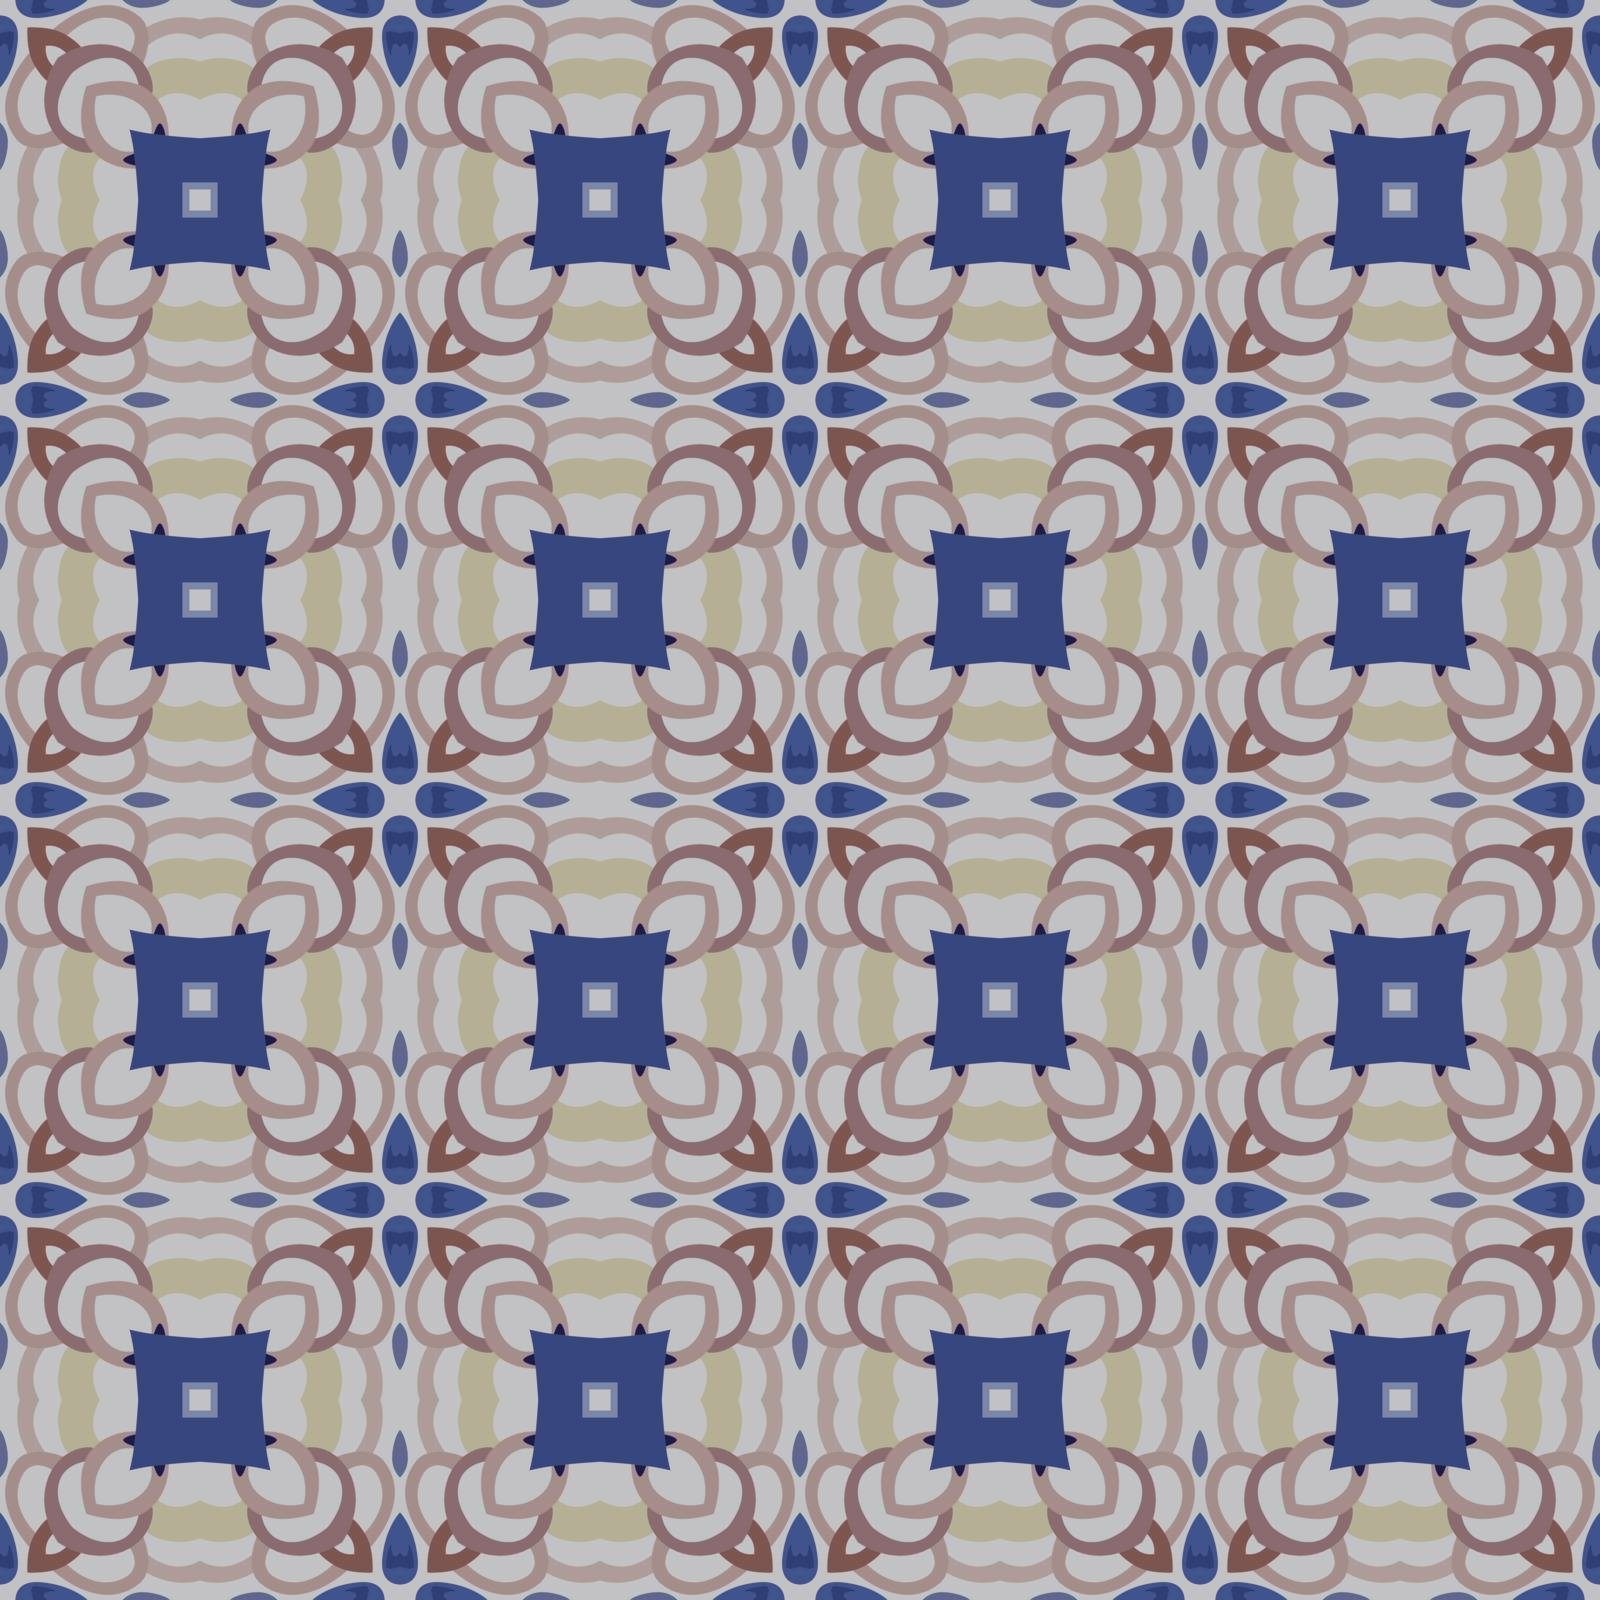 Seamless illustrated pattern made of abstract elements in beige, yellow and shades of blue and brown